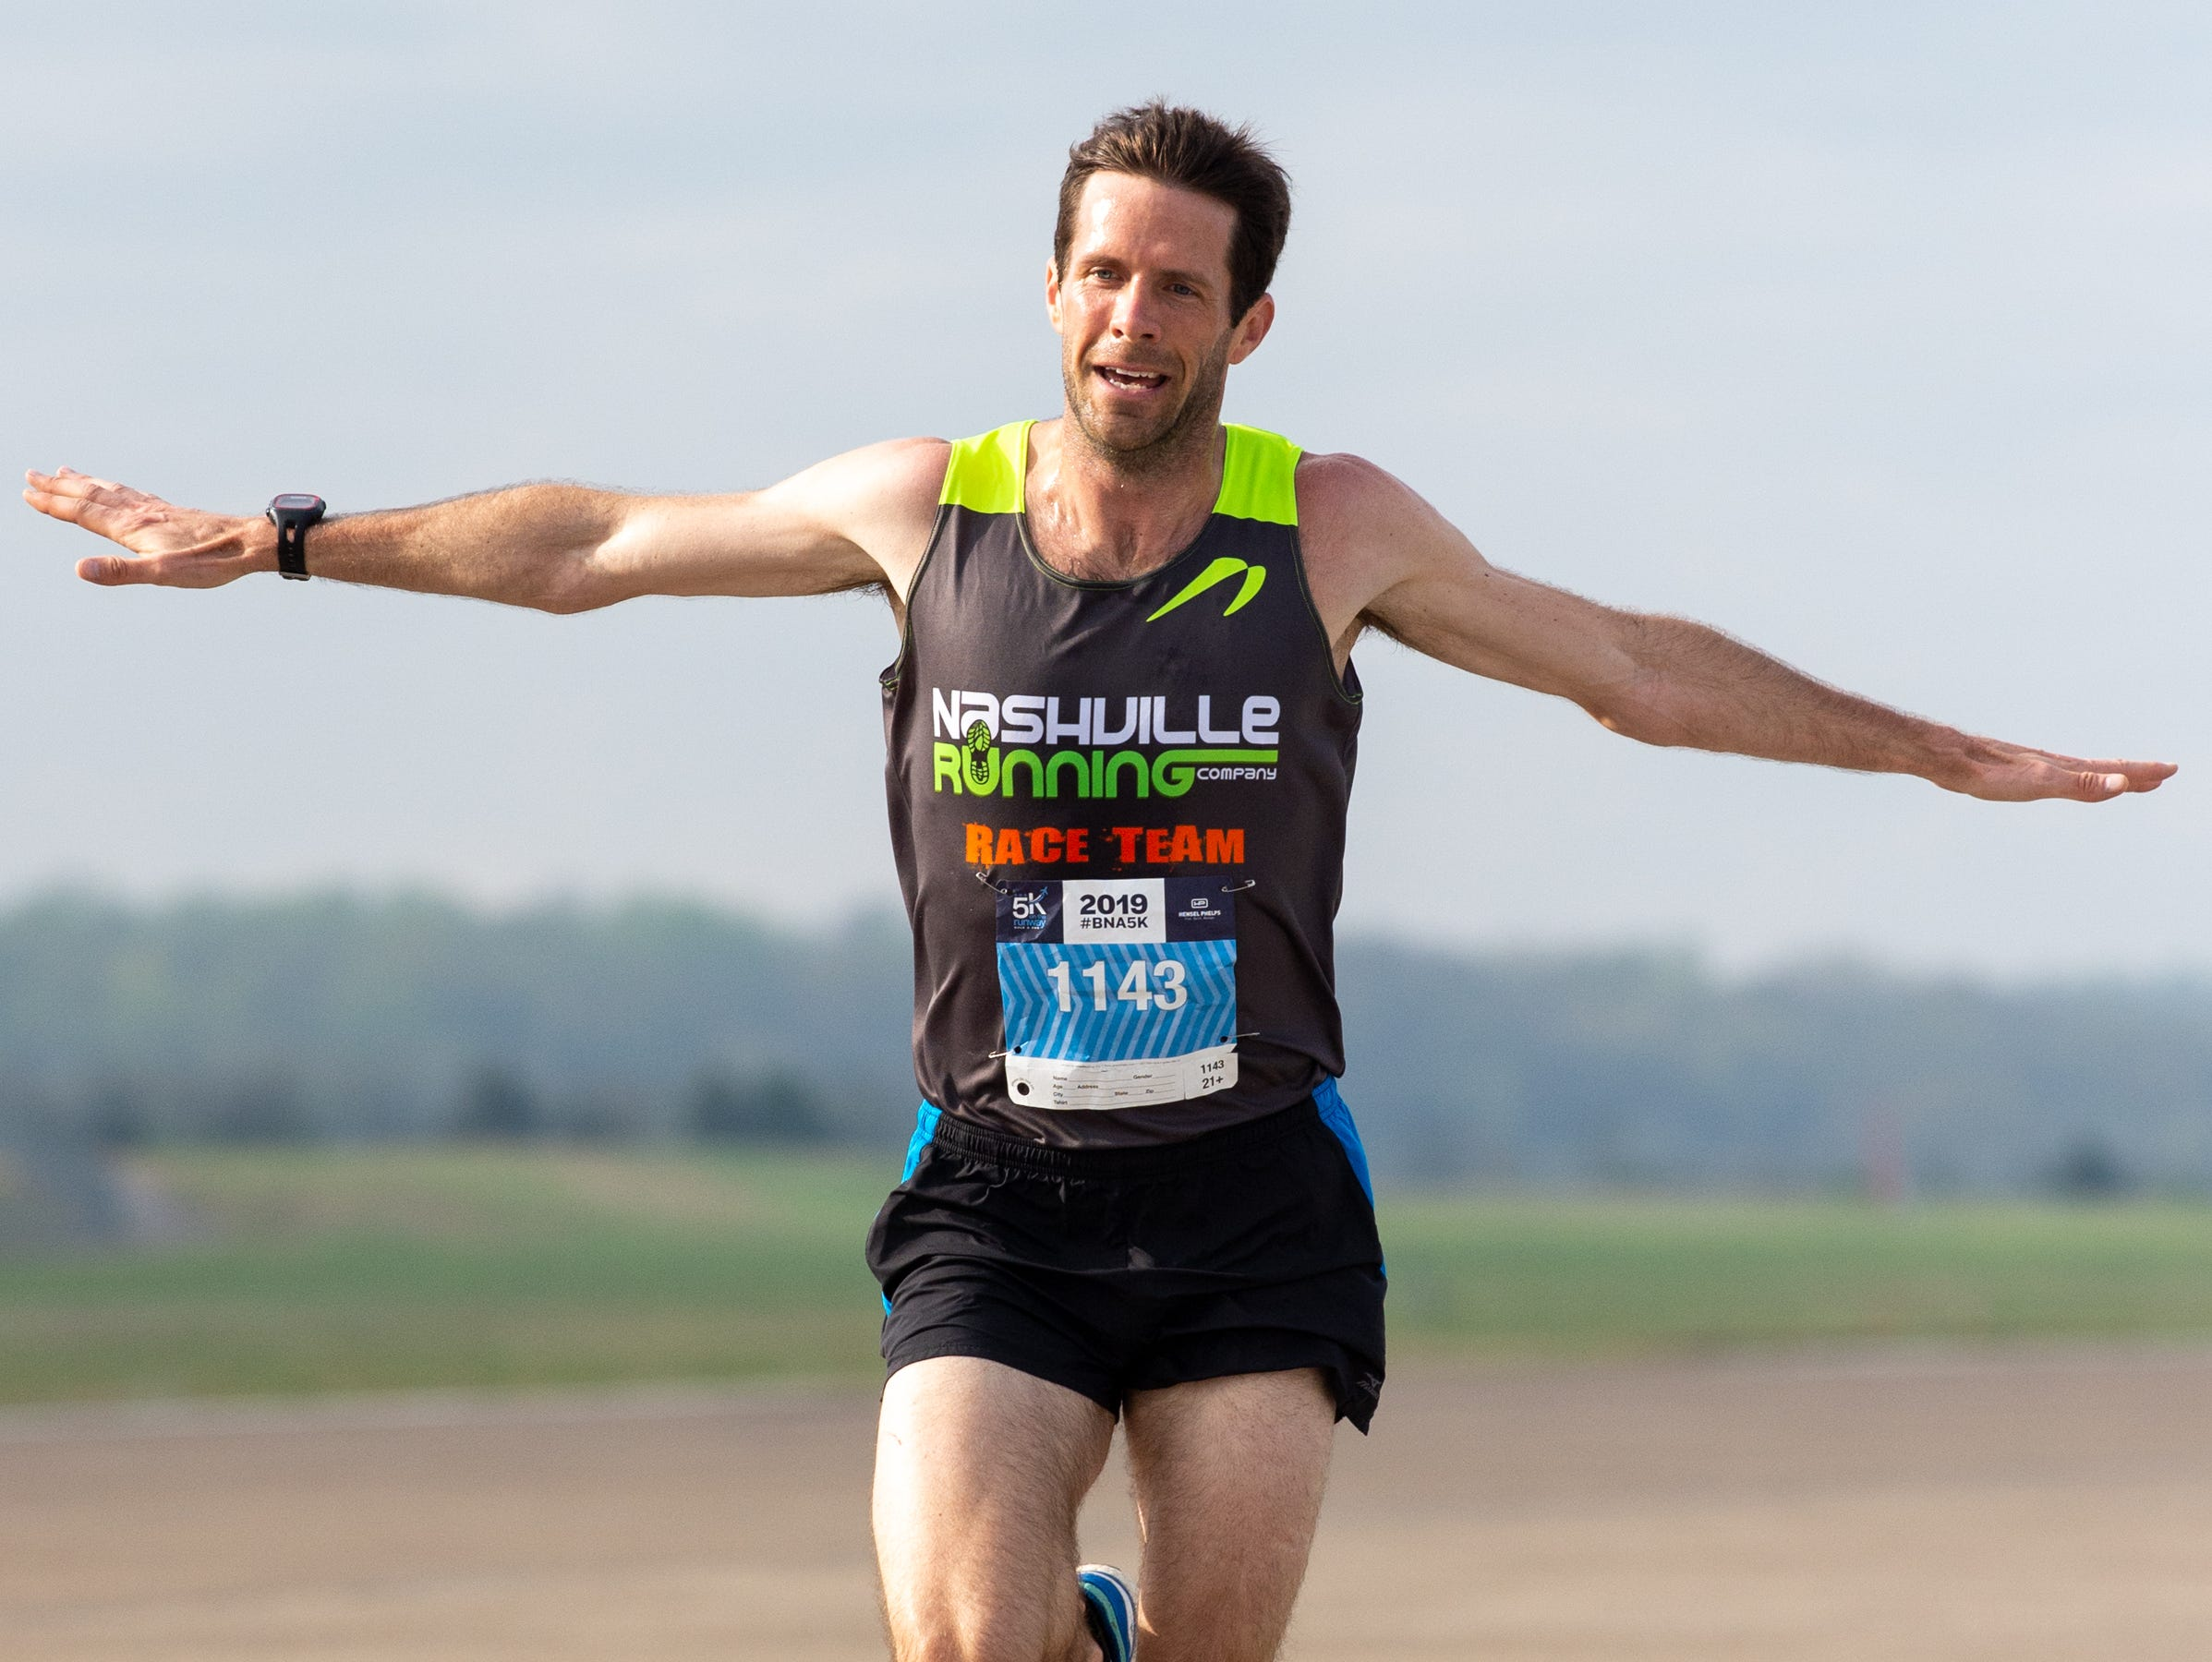 Ryan Snellen spreads out his arms like a plane before finishing the BNA 5K on the Runway first at Nashville International Airport on Runway 2R/20L Saturday, April 6, 2019, in Nashville, Tenn.